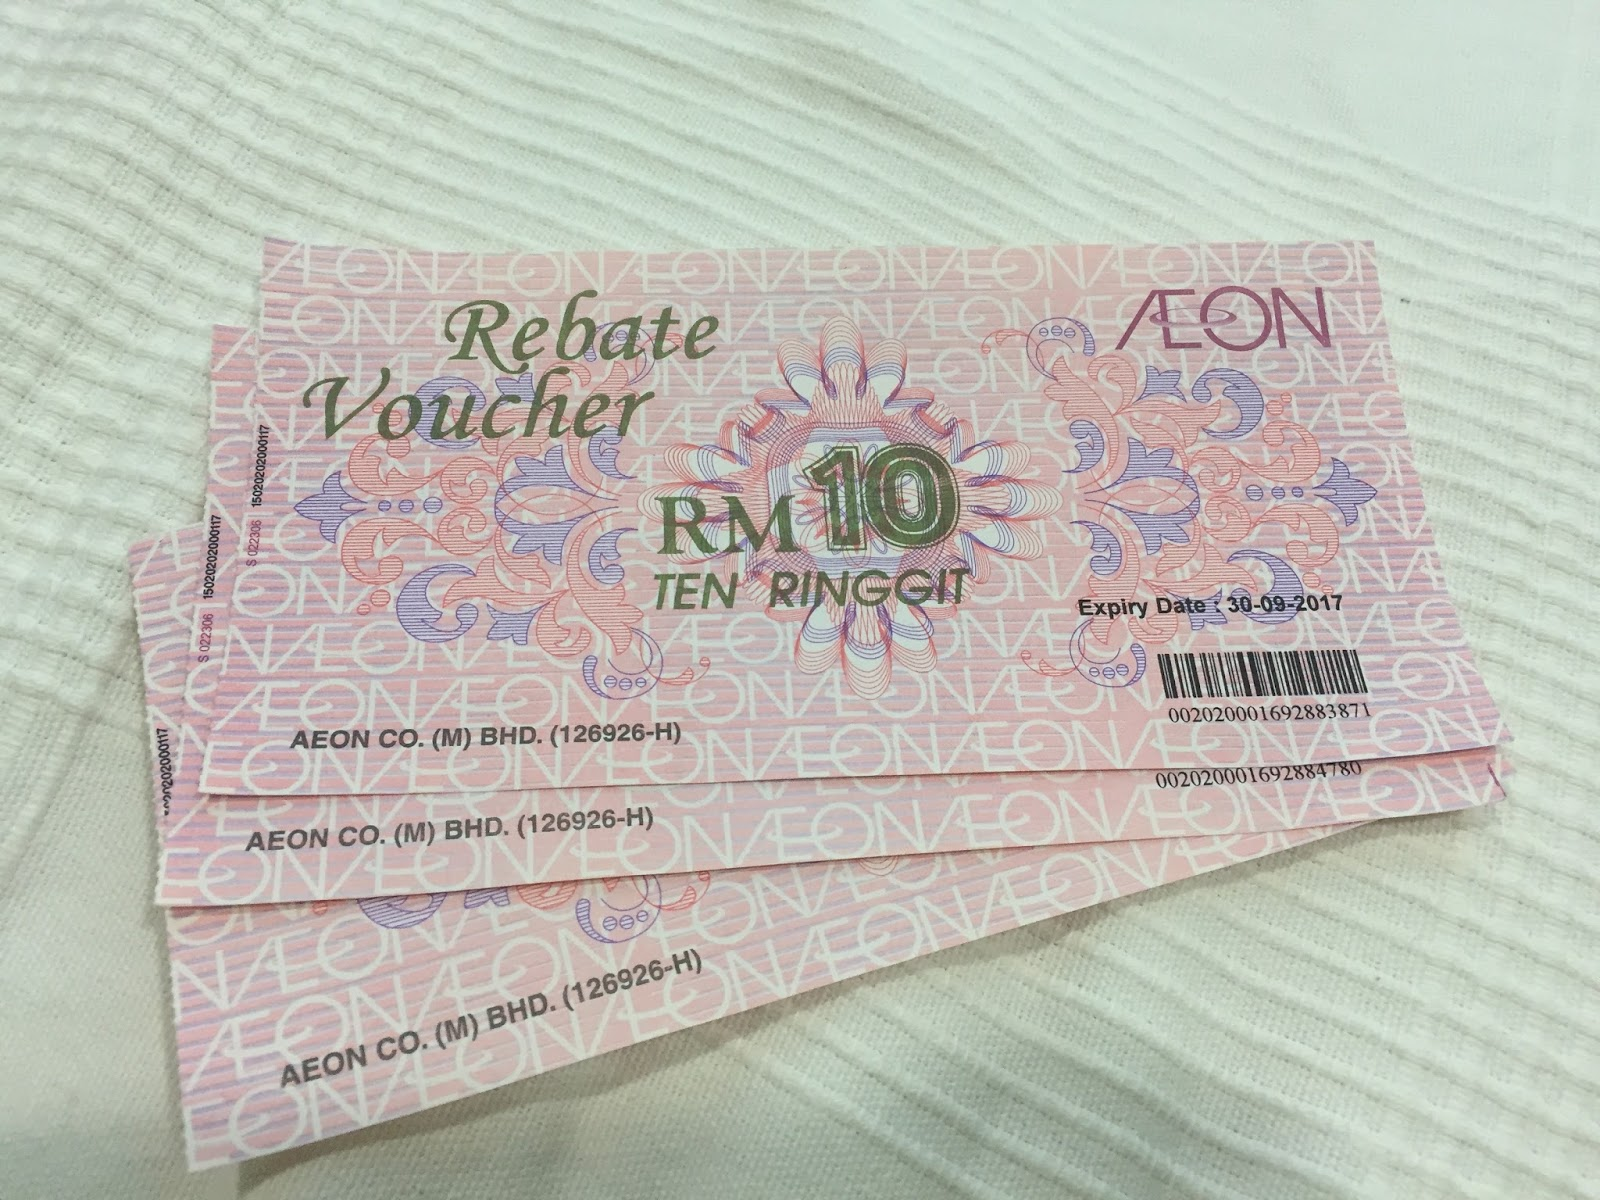 Rebate Voucher AEON